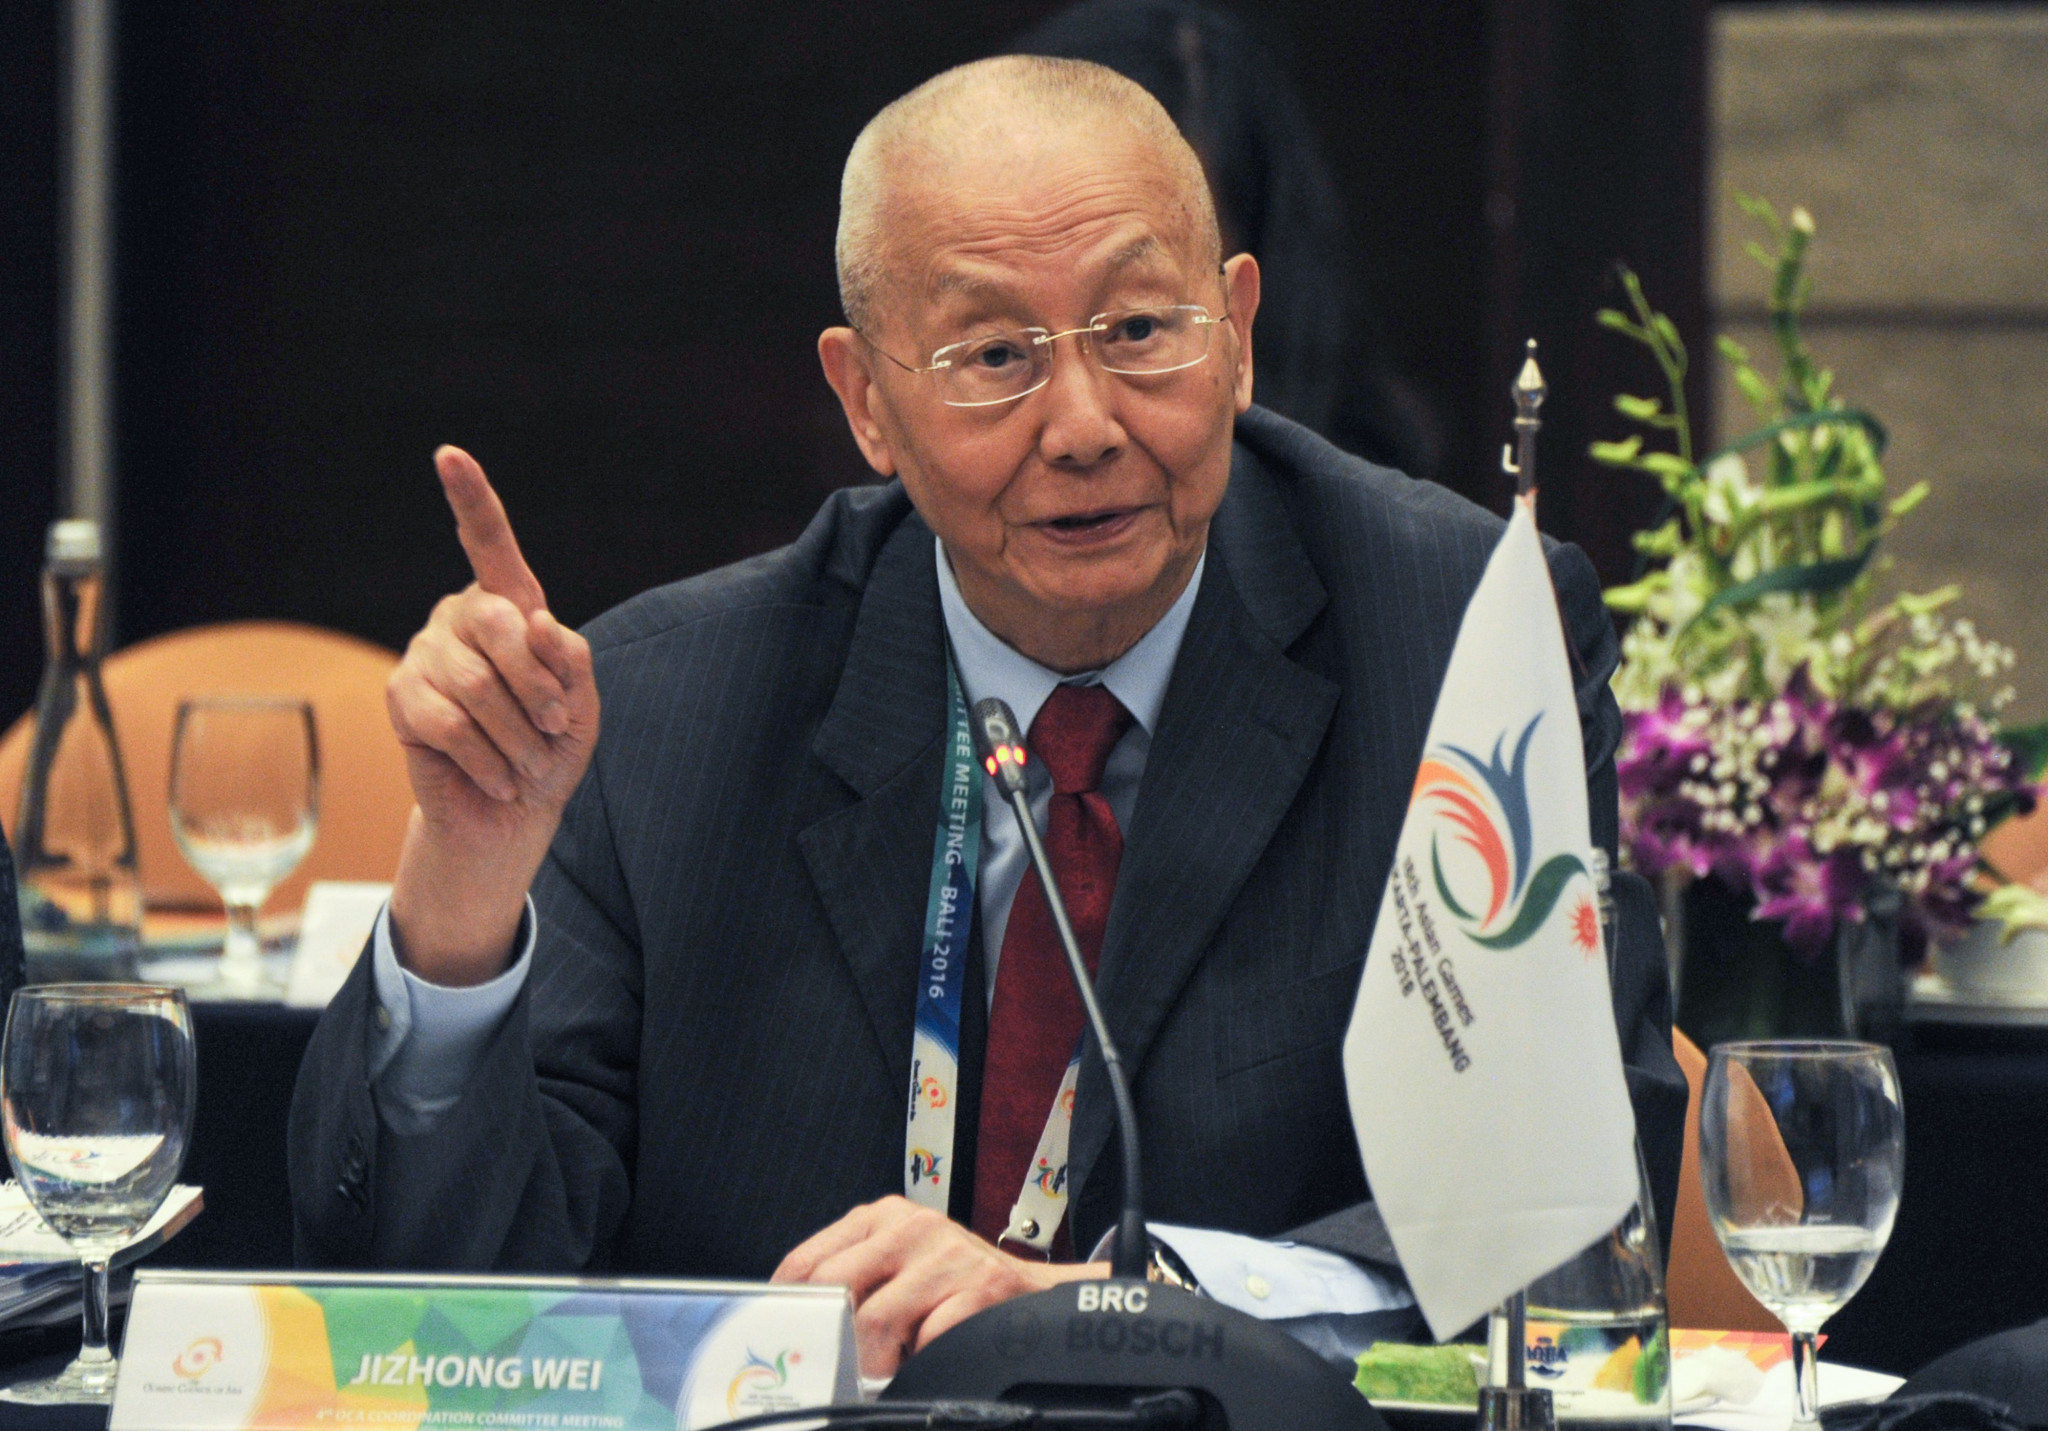 Quanhai Li is believed to be only the second Chinese official to take charge of a summer Olympic International Sports Federation after former FIVB President Wei Jizhong ©Getty Images